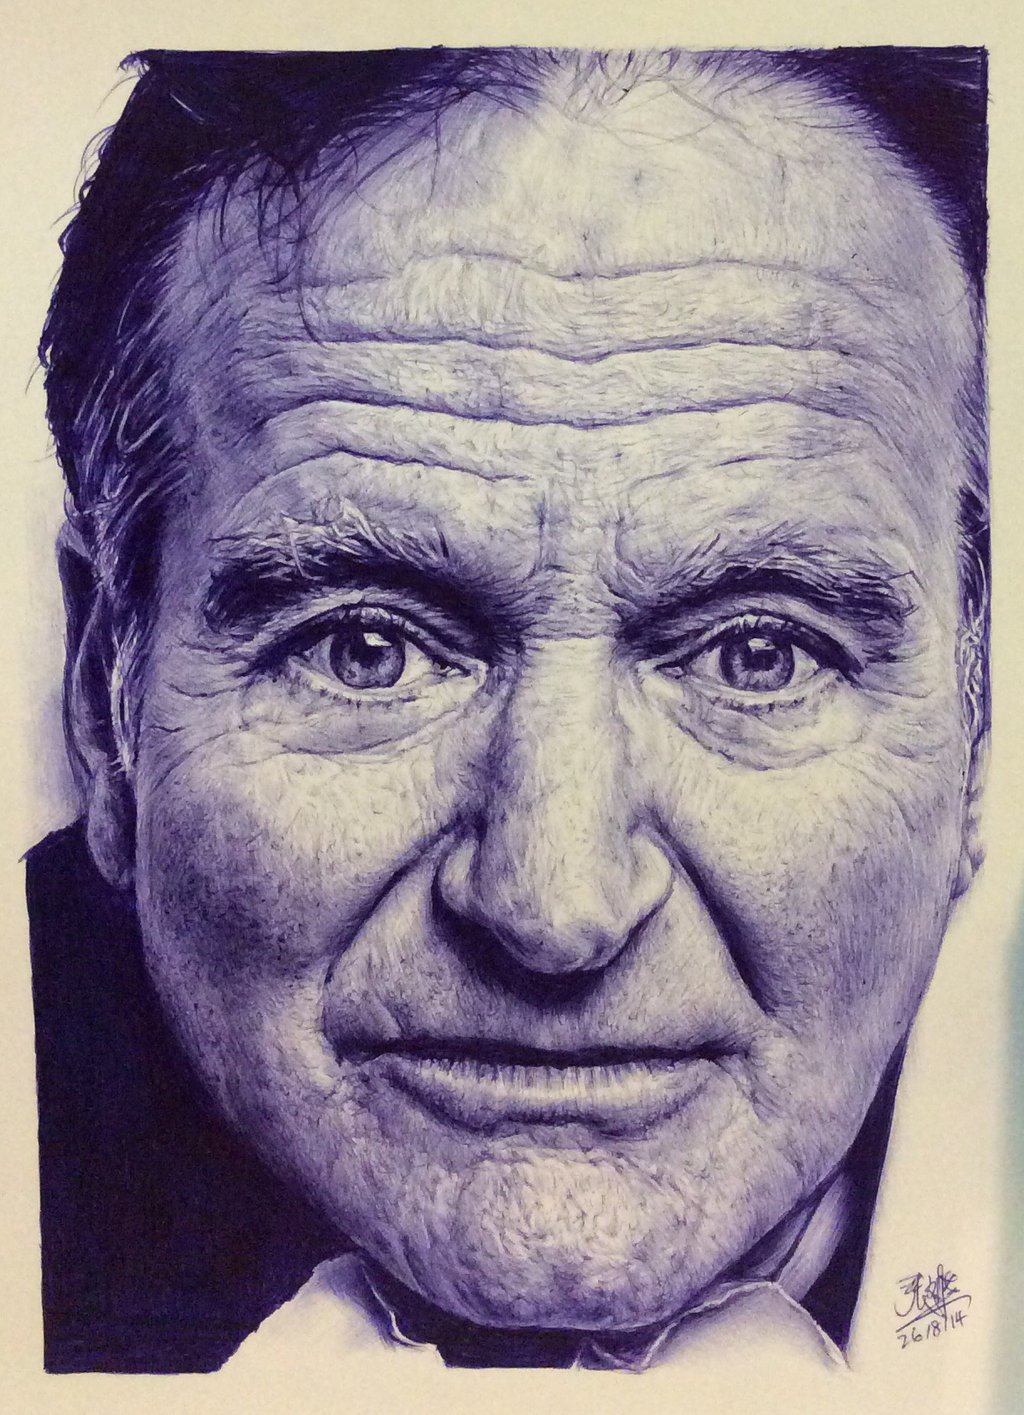 Drawn portrait ballpoint pen Of by Ballpoint Ballpoint Robin